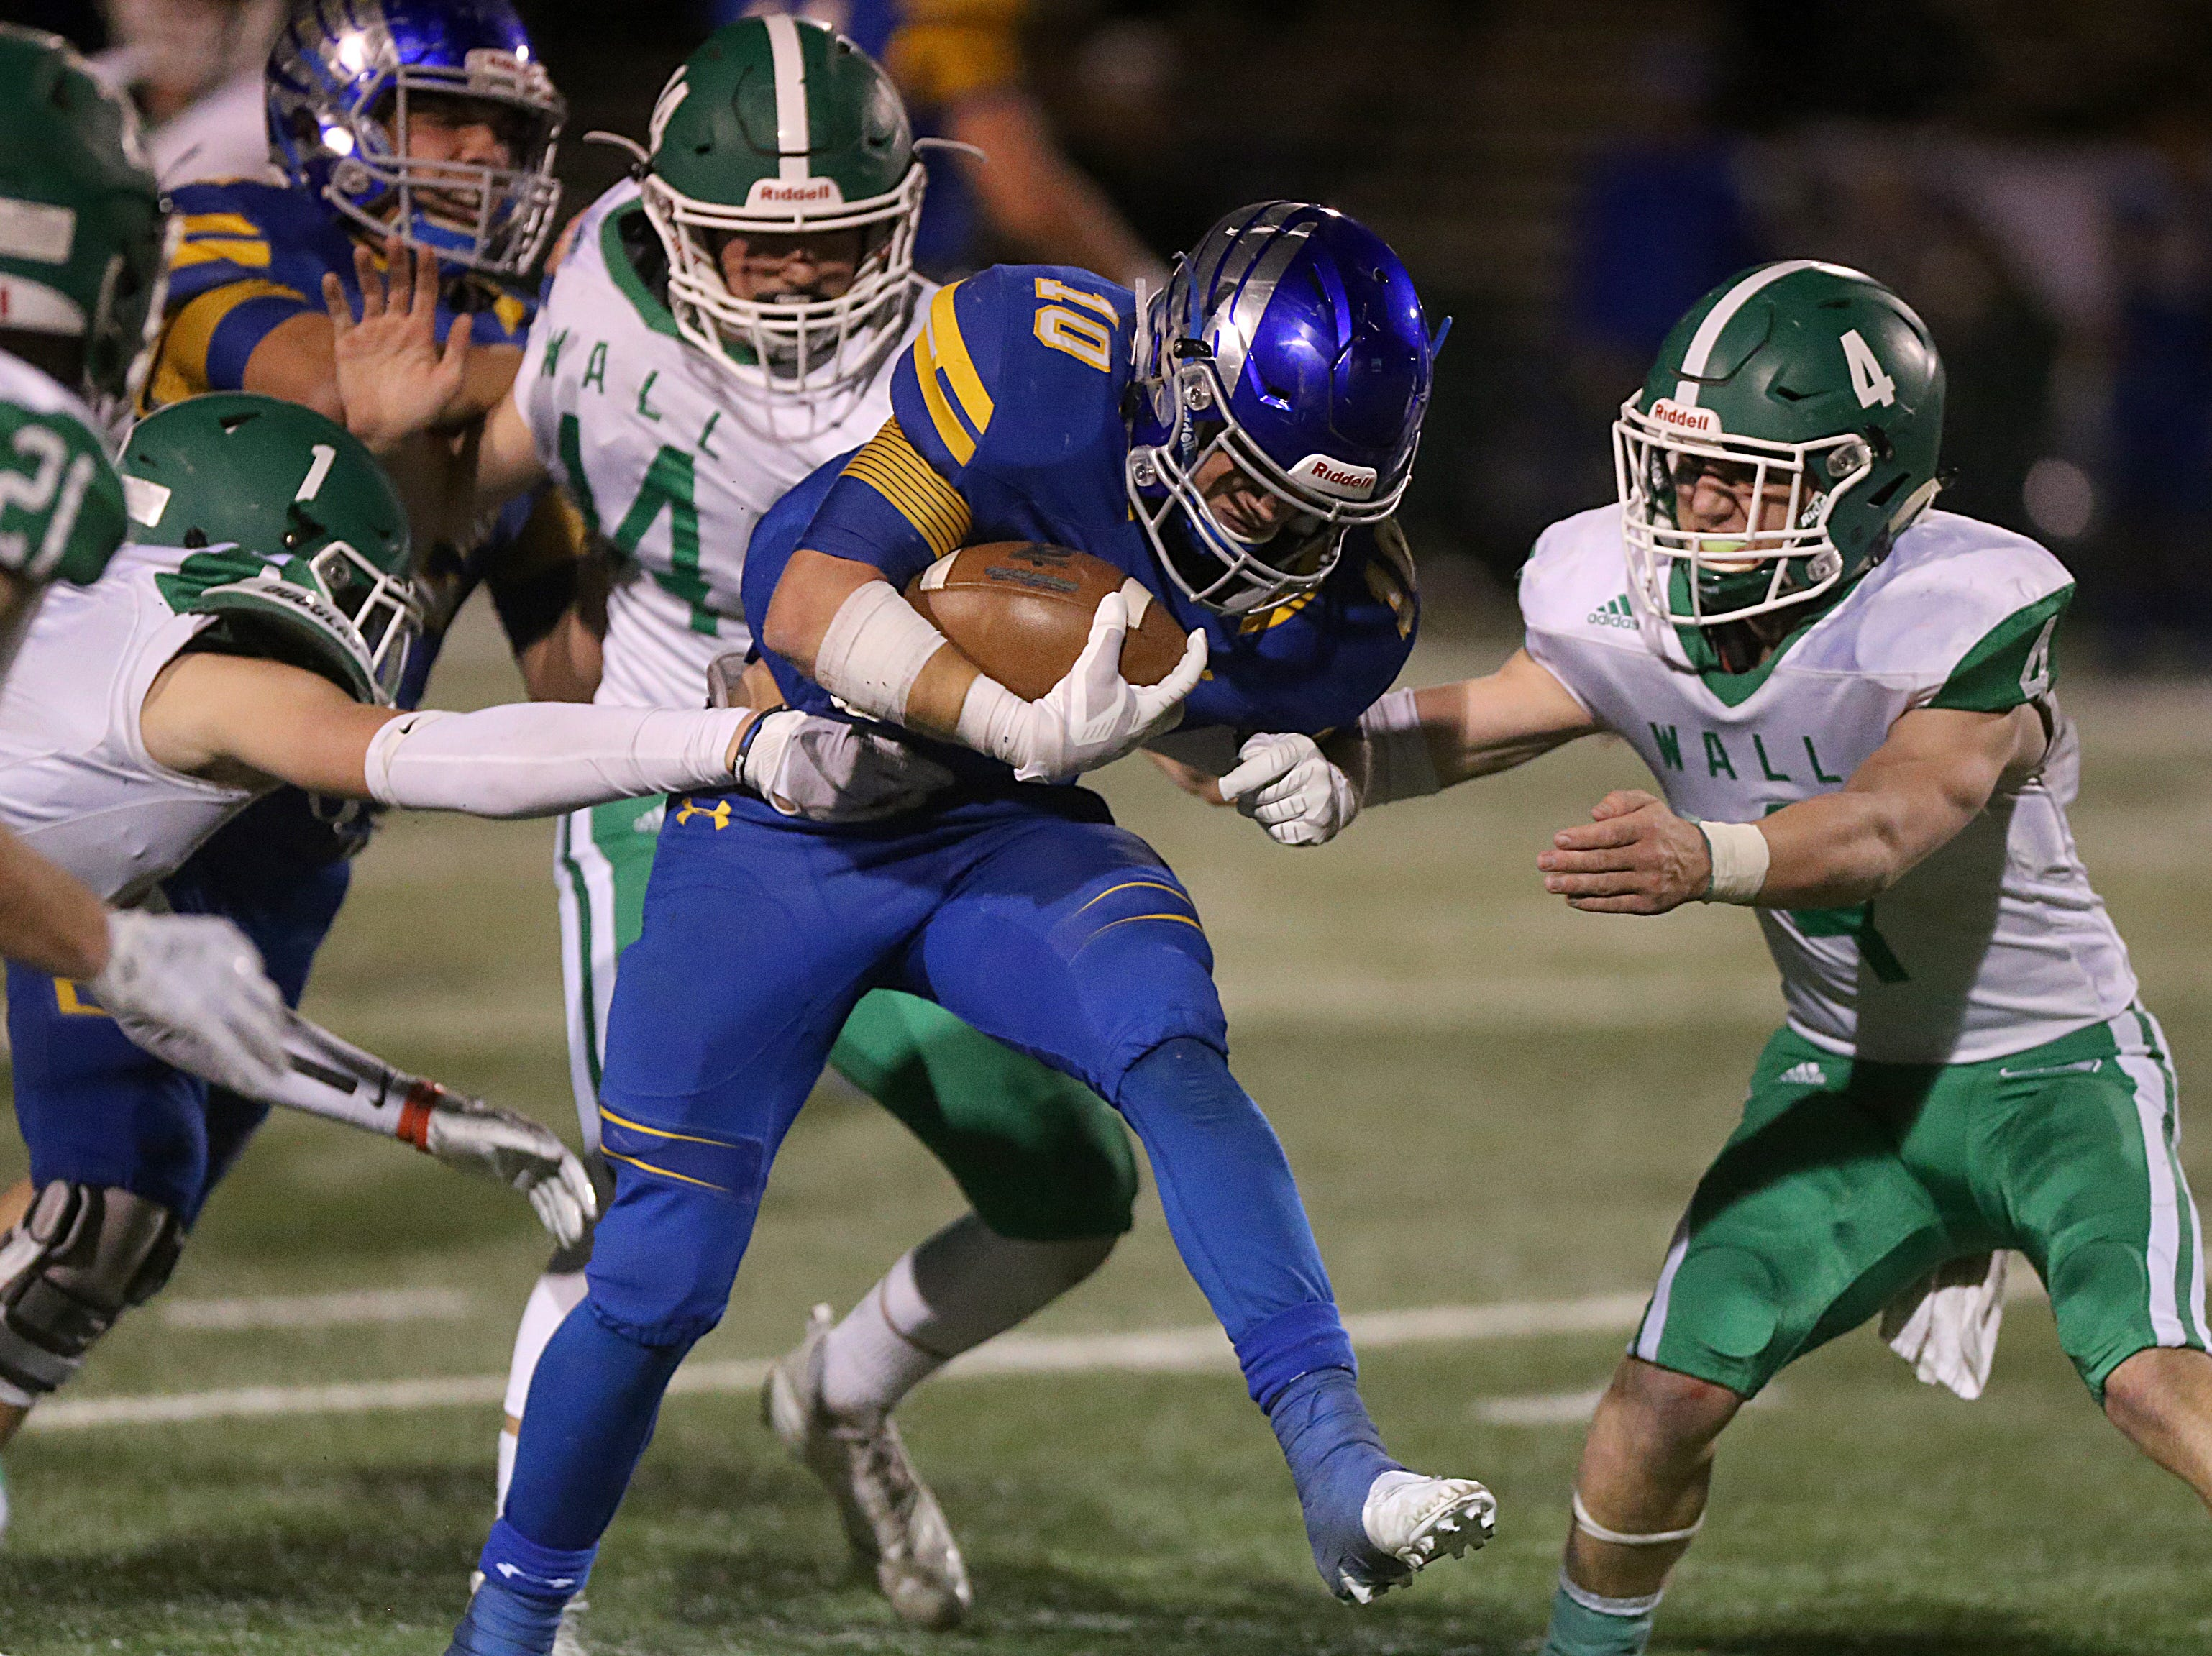 Brock's Toby Morrison (#10) is tackled by several Wall players Friday, Nov. 30, 2018, during their game at Shotwell Stadium in Abilene. Wall lost 13 to 35.